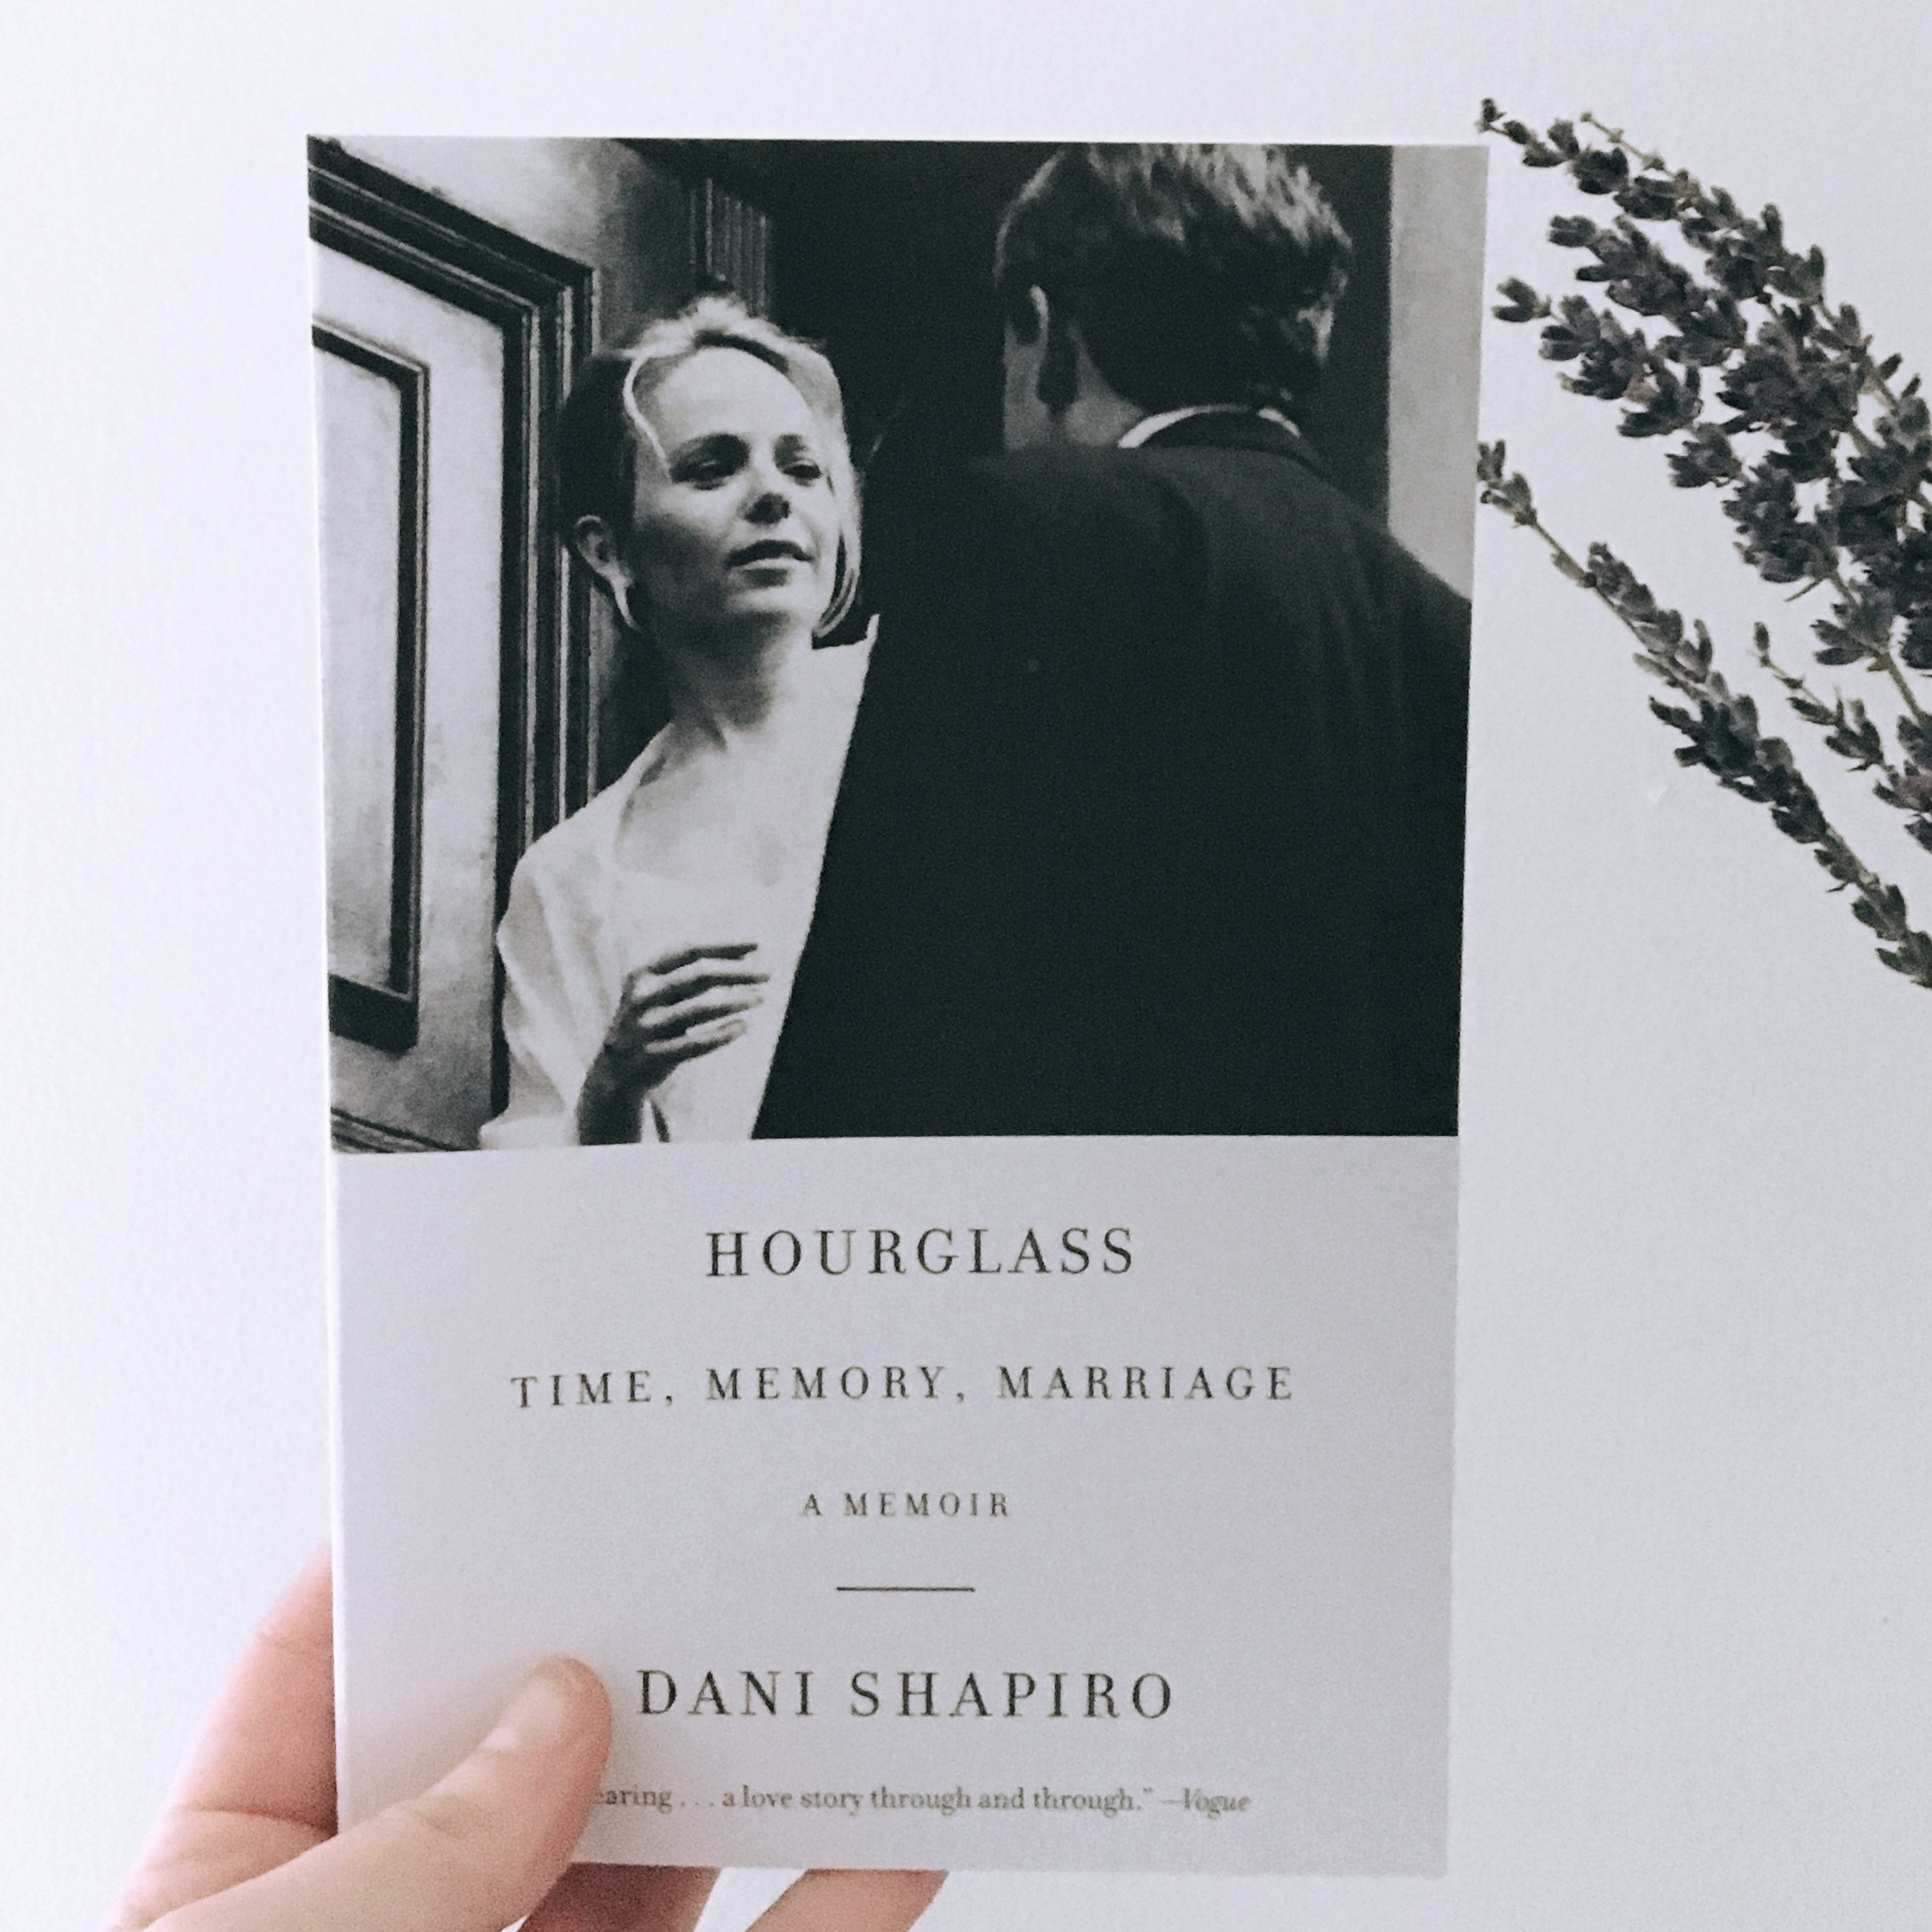 """Hourglass: Time, Memory, Marriage, Dani Shapiro - The book my healing, romantic, guarded heart needed and will continue to need. Dani invited us into her marriage, crafting a poignant reflection on the ebb and flow of human intimacy.""""What must we summon and continue to summon in order to form ourselves toward, against, alongside another person for the duration? To join ourselves to the unknown? What steadiness of spirit? What relentless faith?"""""""